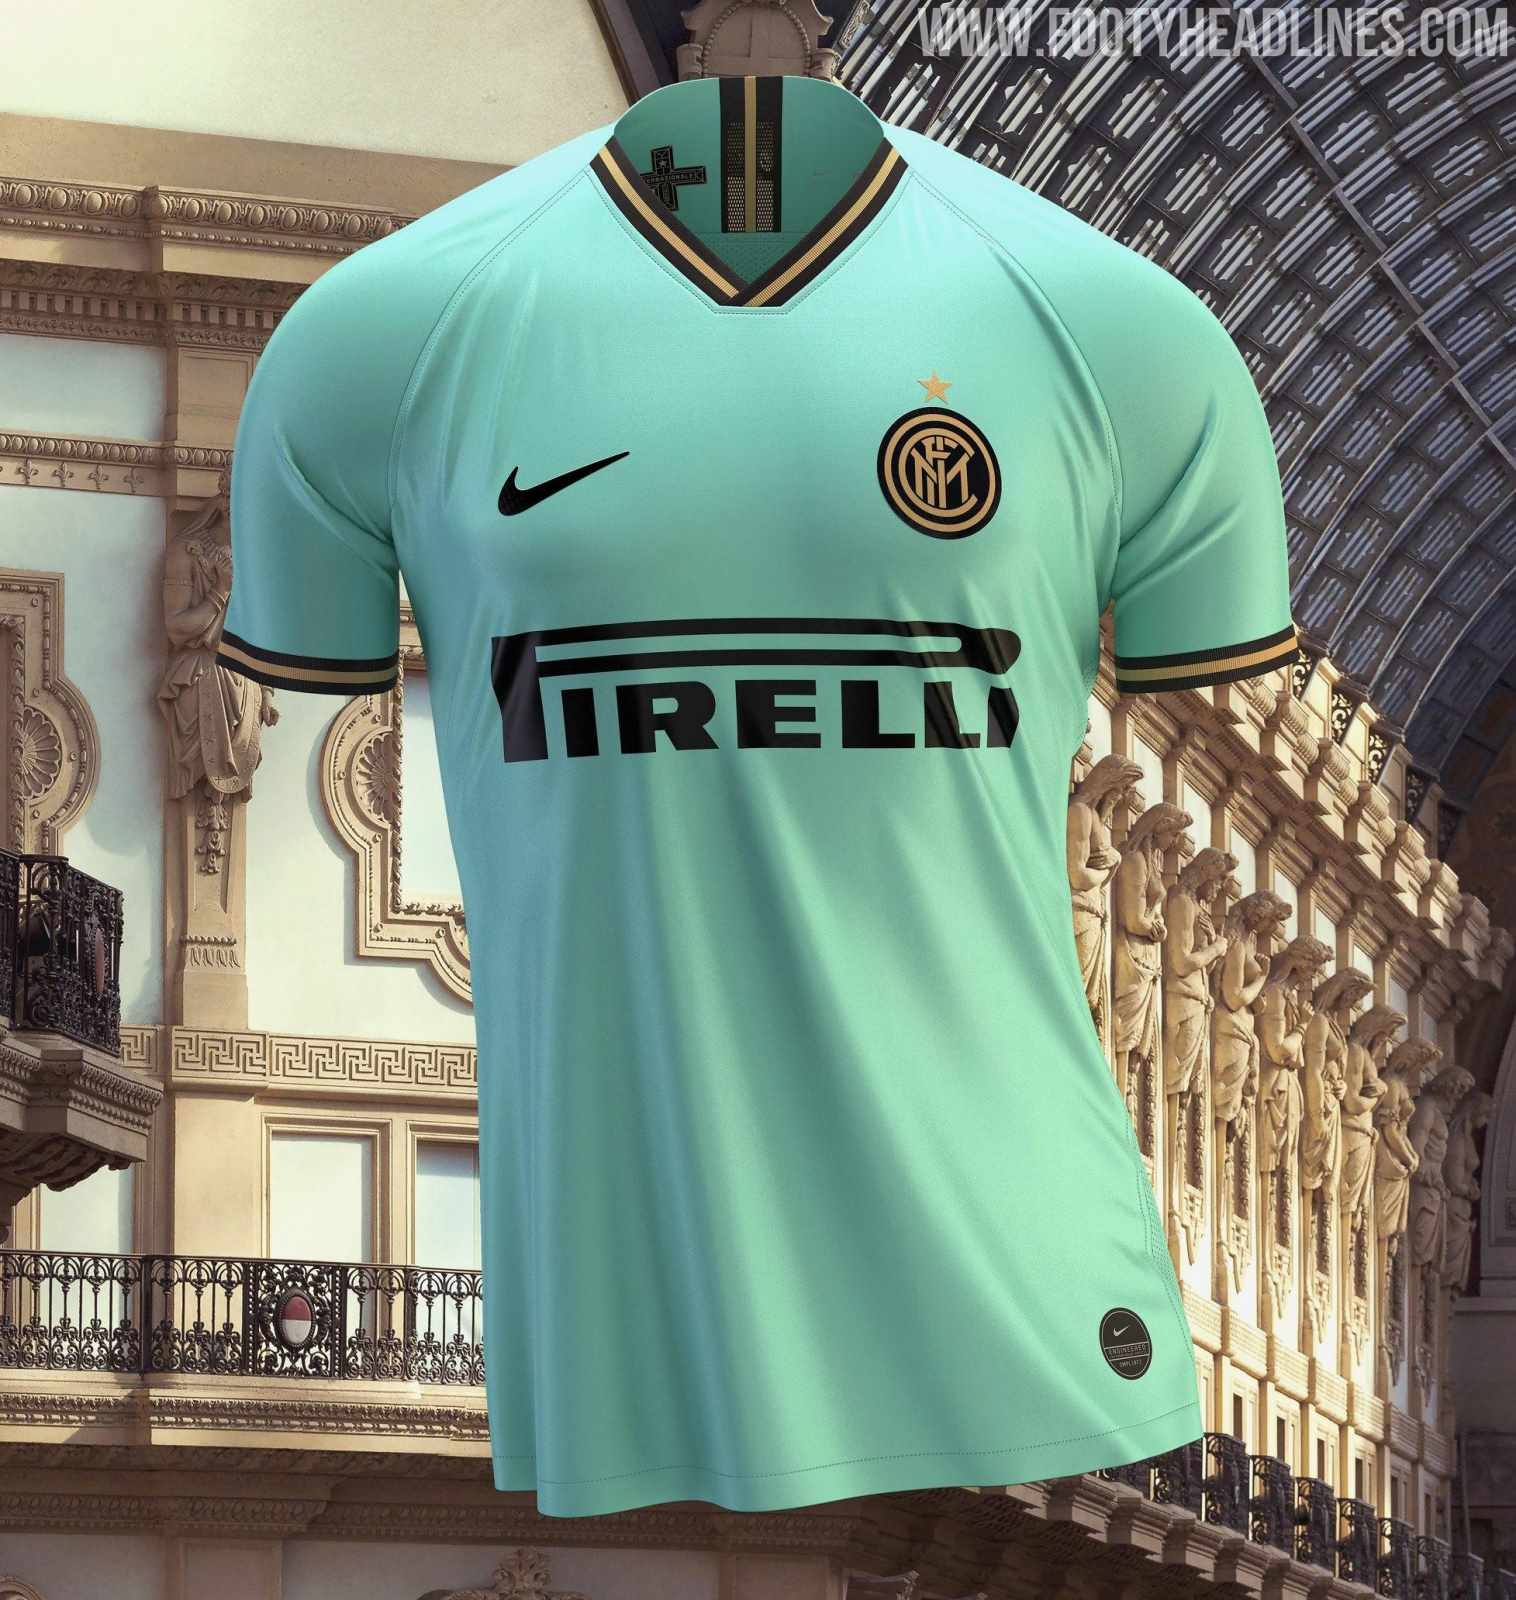 separation shoes ecf80 4bc5d Nike Inter Milan 19-20 Away Kit Revealed - Footy Headlines